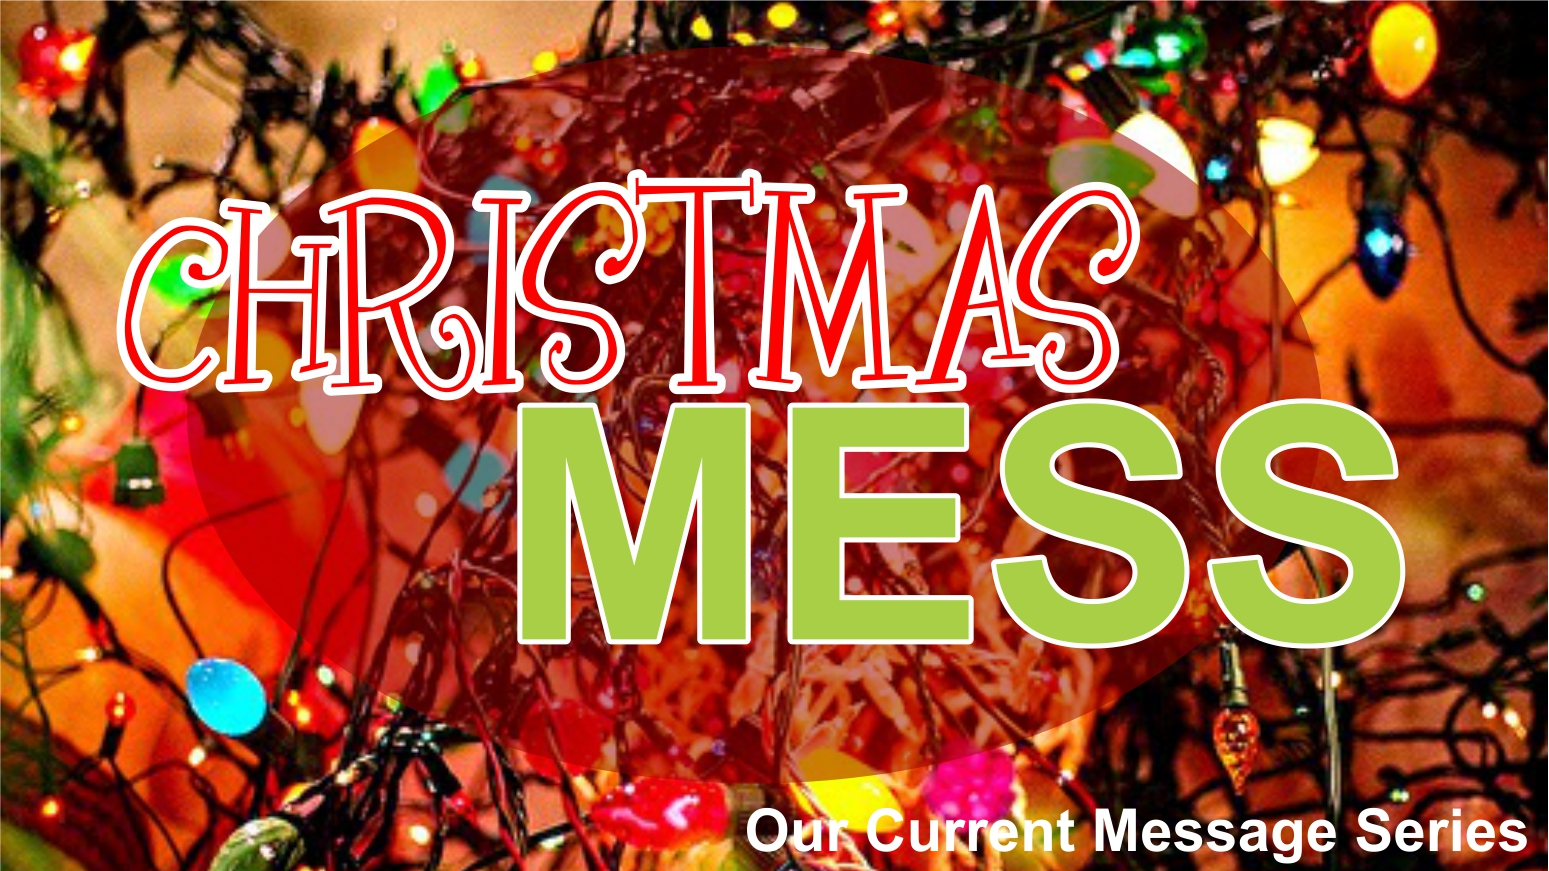 Christmas Mess message series logo